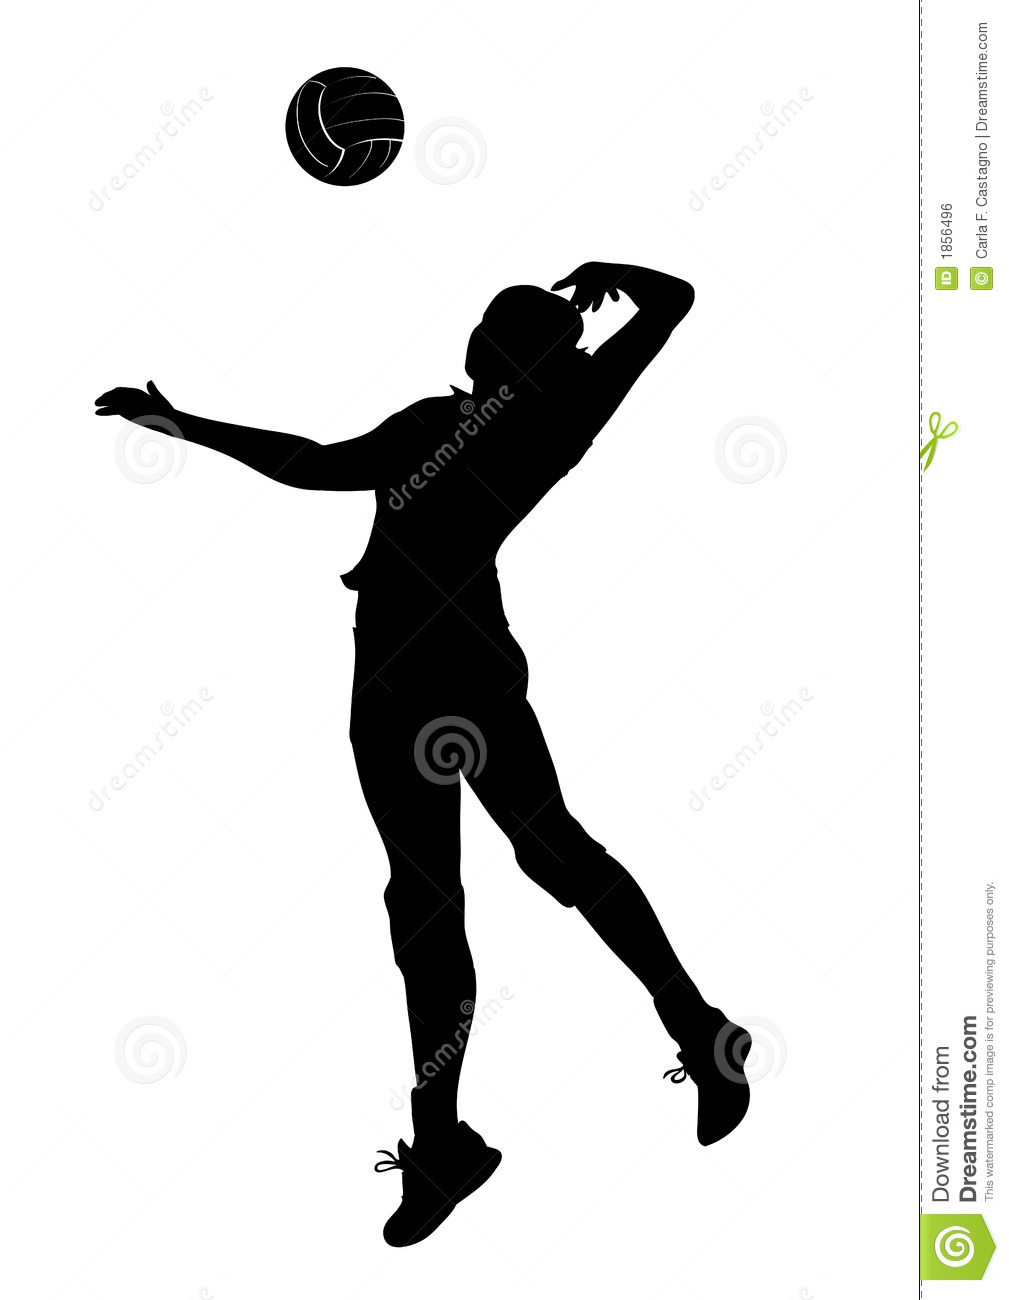 volleyball player clipart free #16